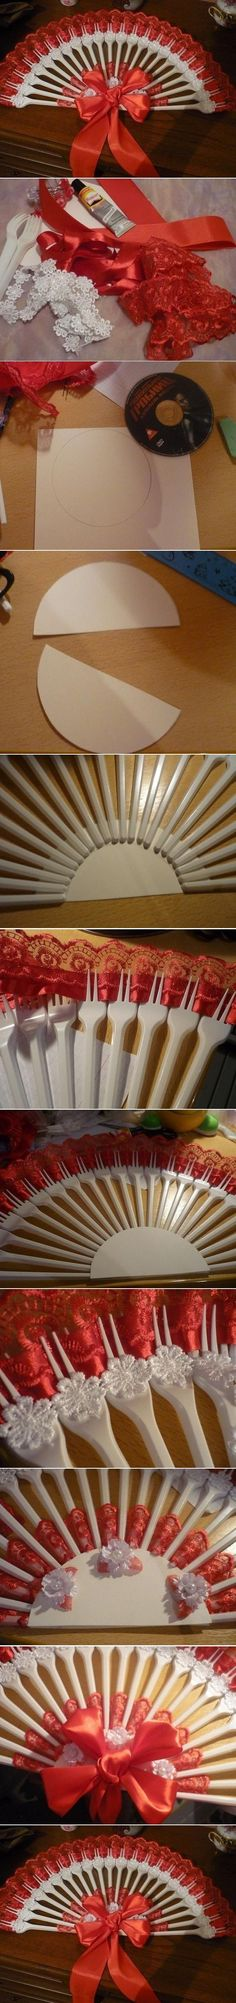 DIY Disposable Fork Fan